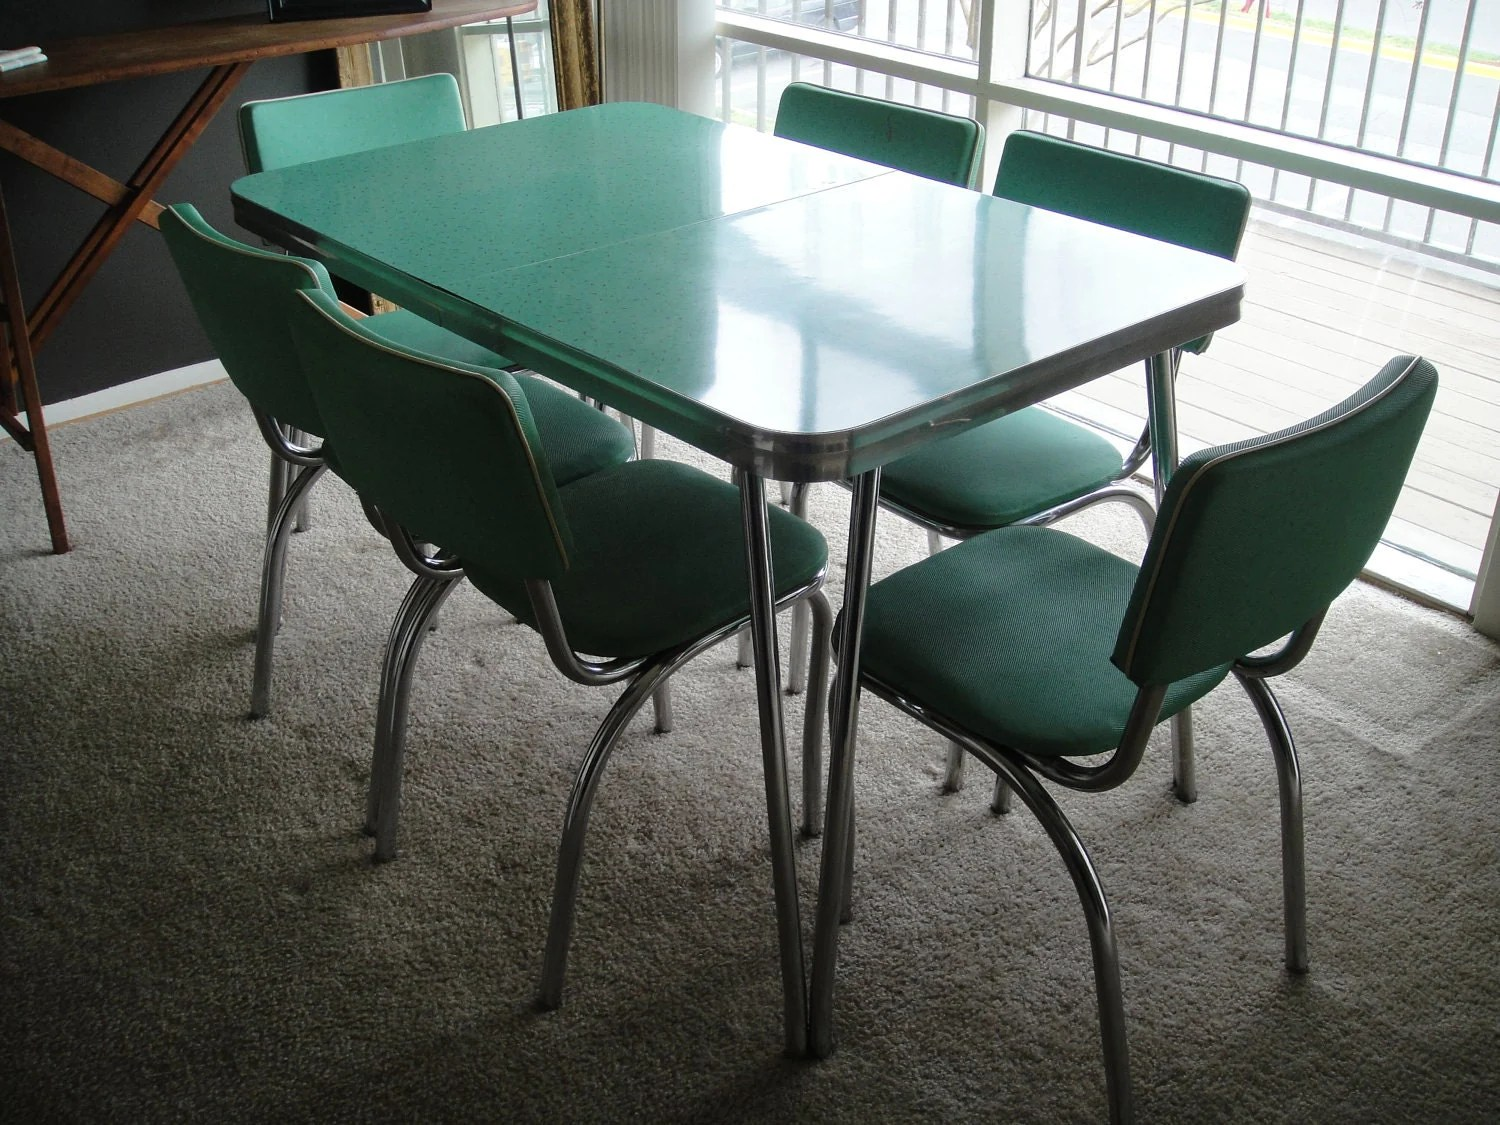 Formica Table And Chairs Reserved 1950s Kitchen Table And Chairs Mint By Expatvintage